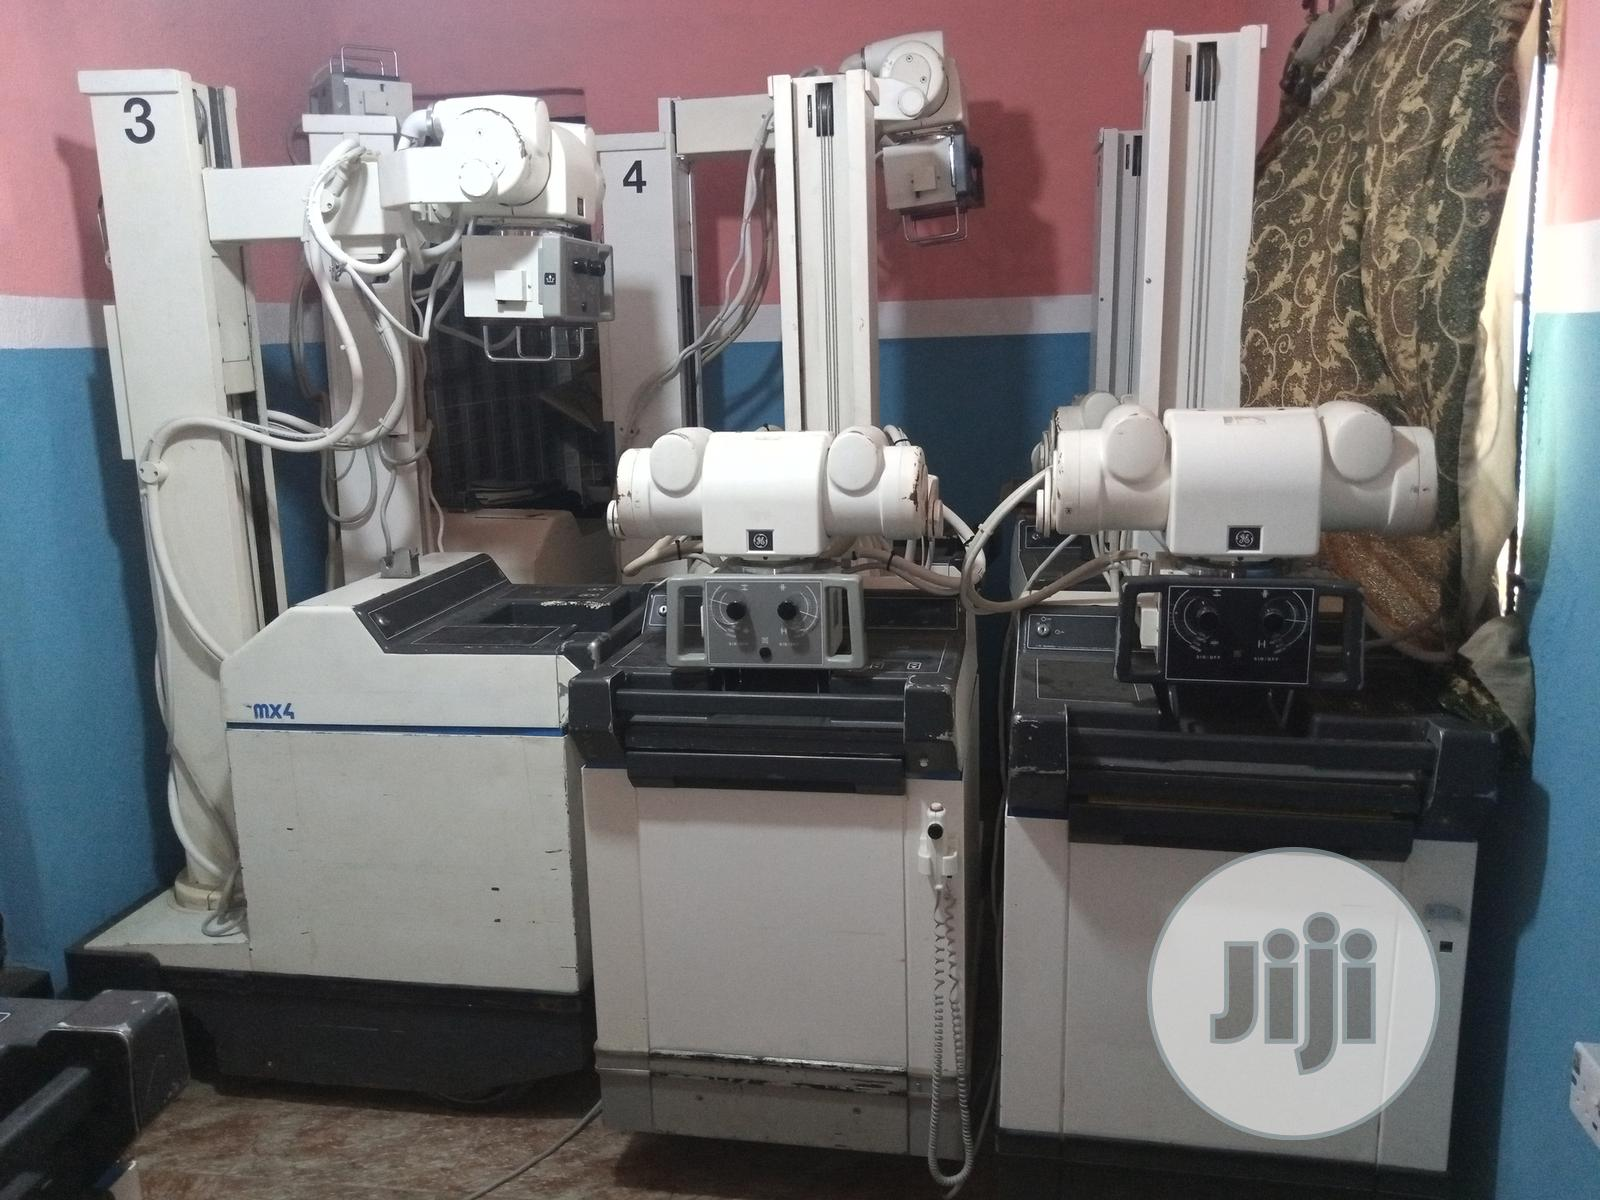 Archive: GE AMX 4 Mobile X-Ray Machine